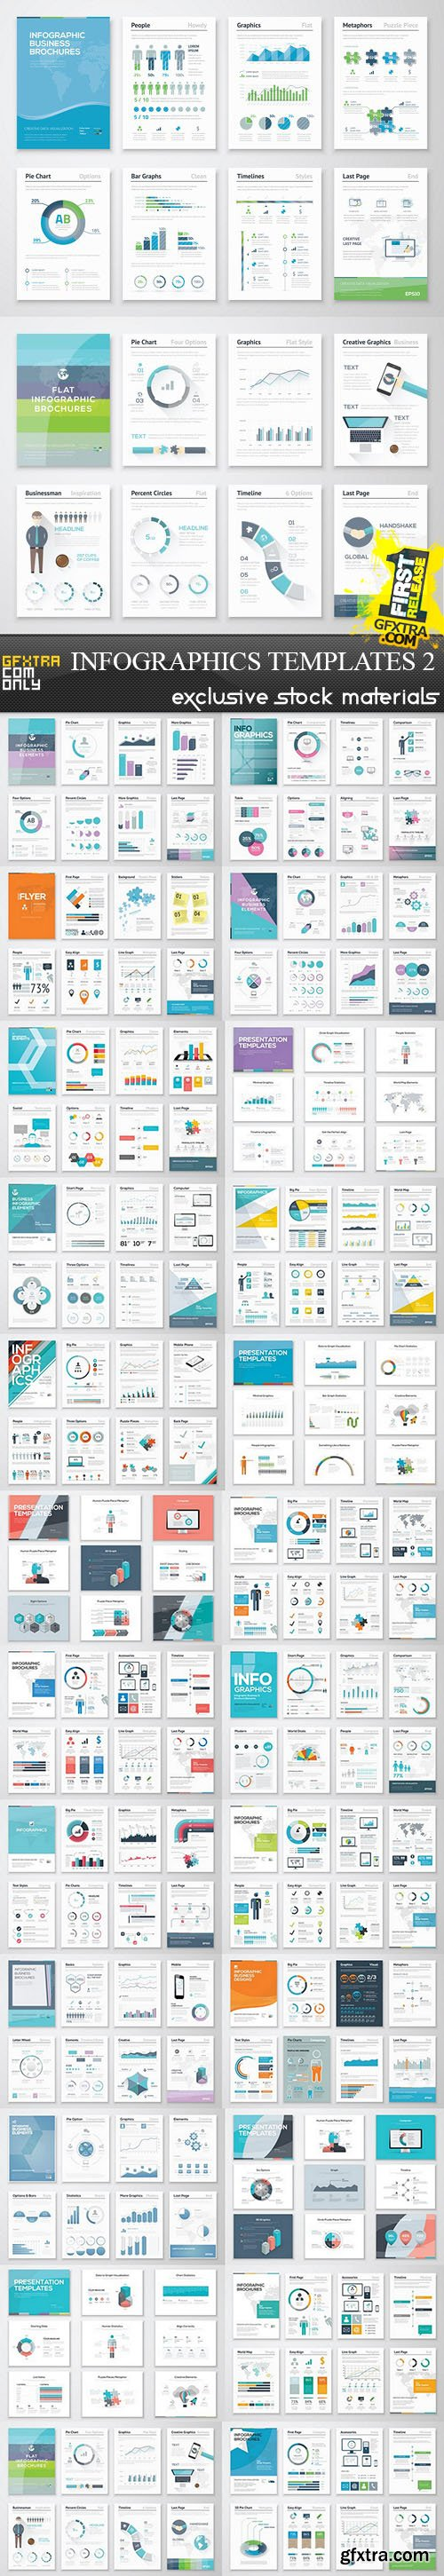 Infographics Templates 2, 25xEPS